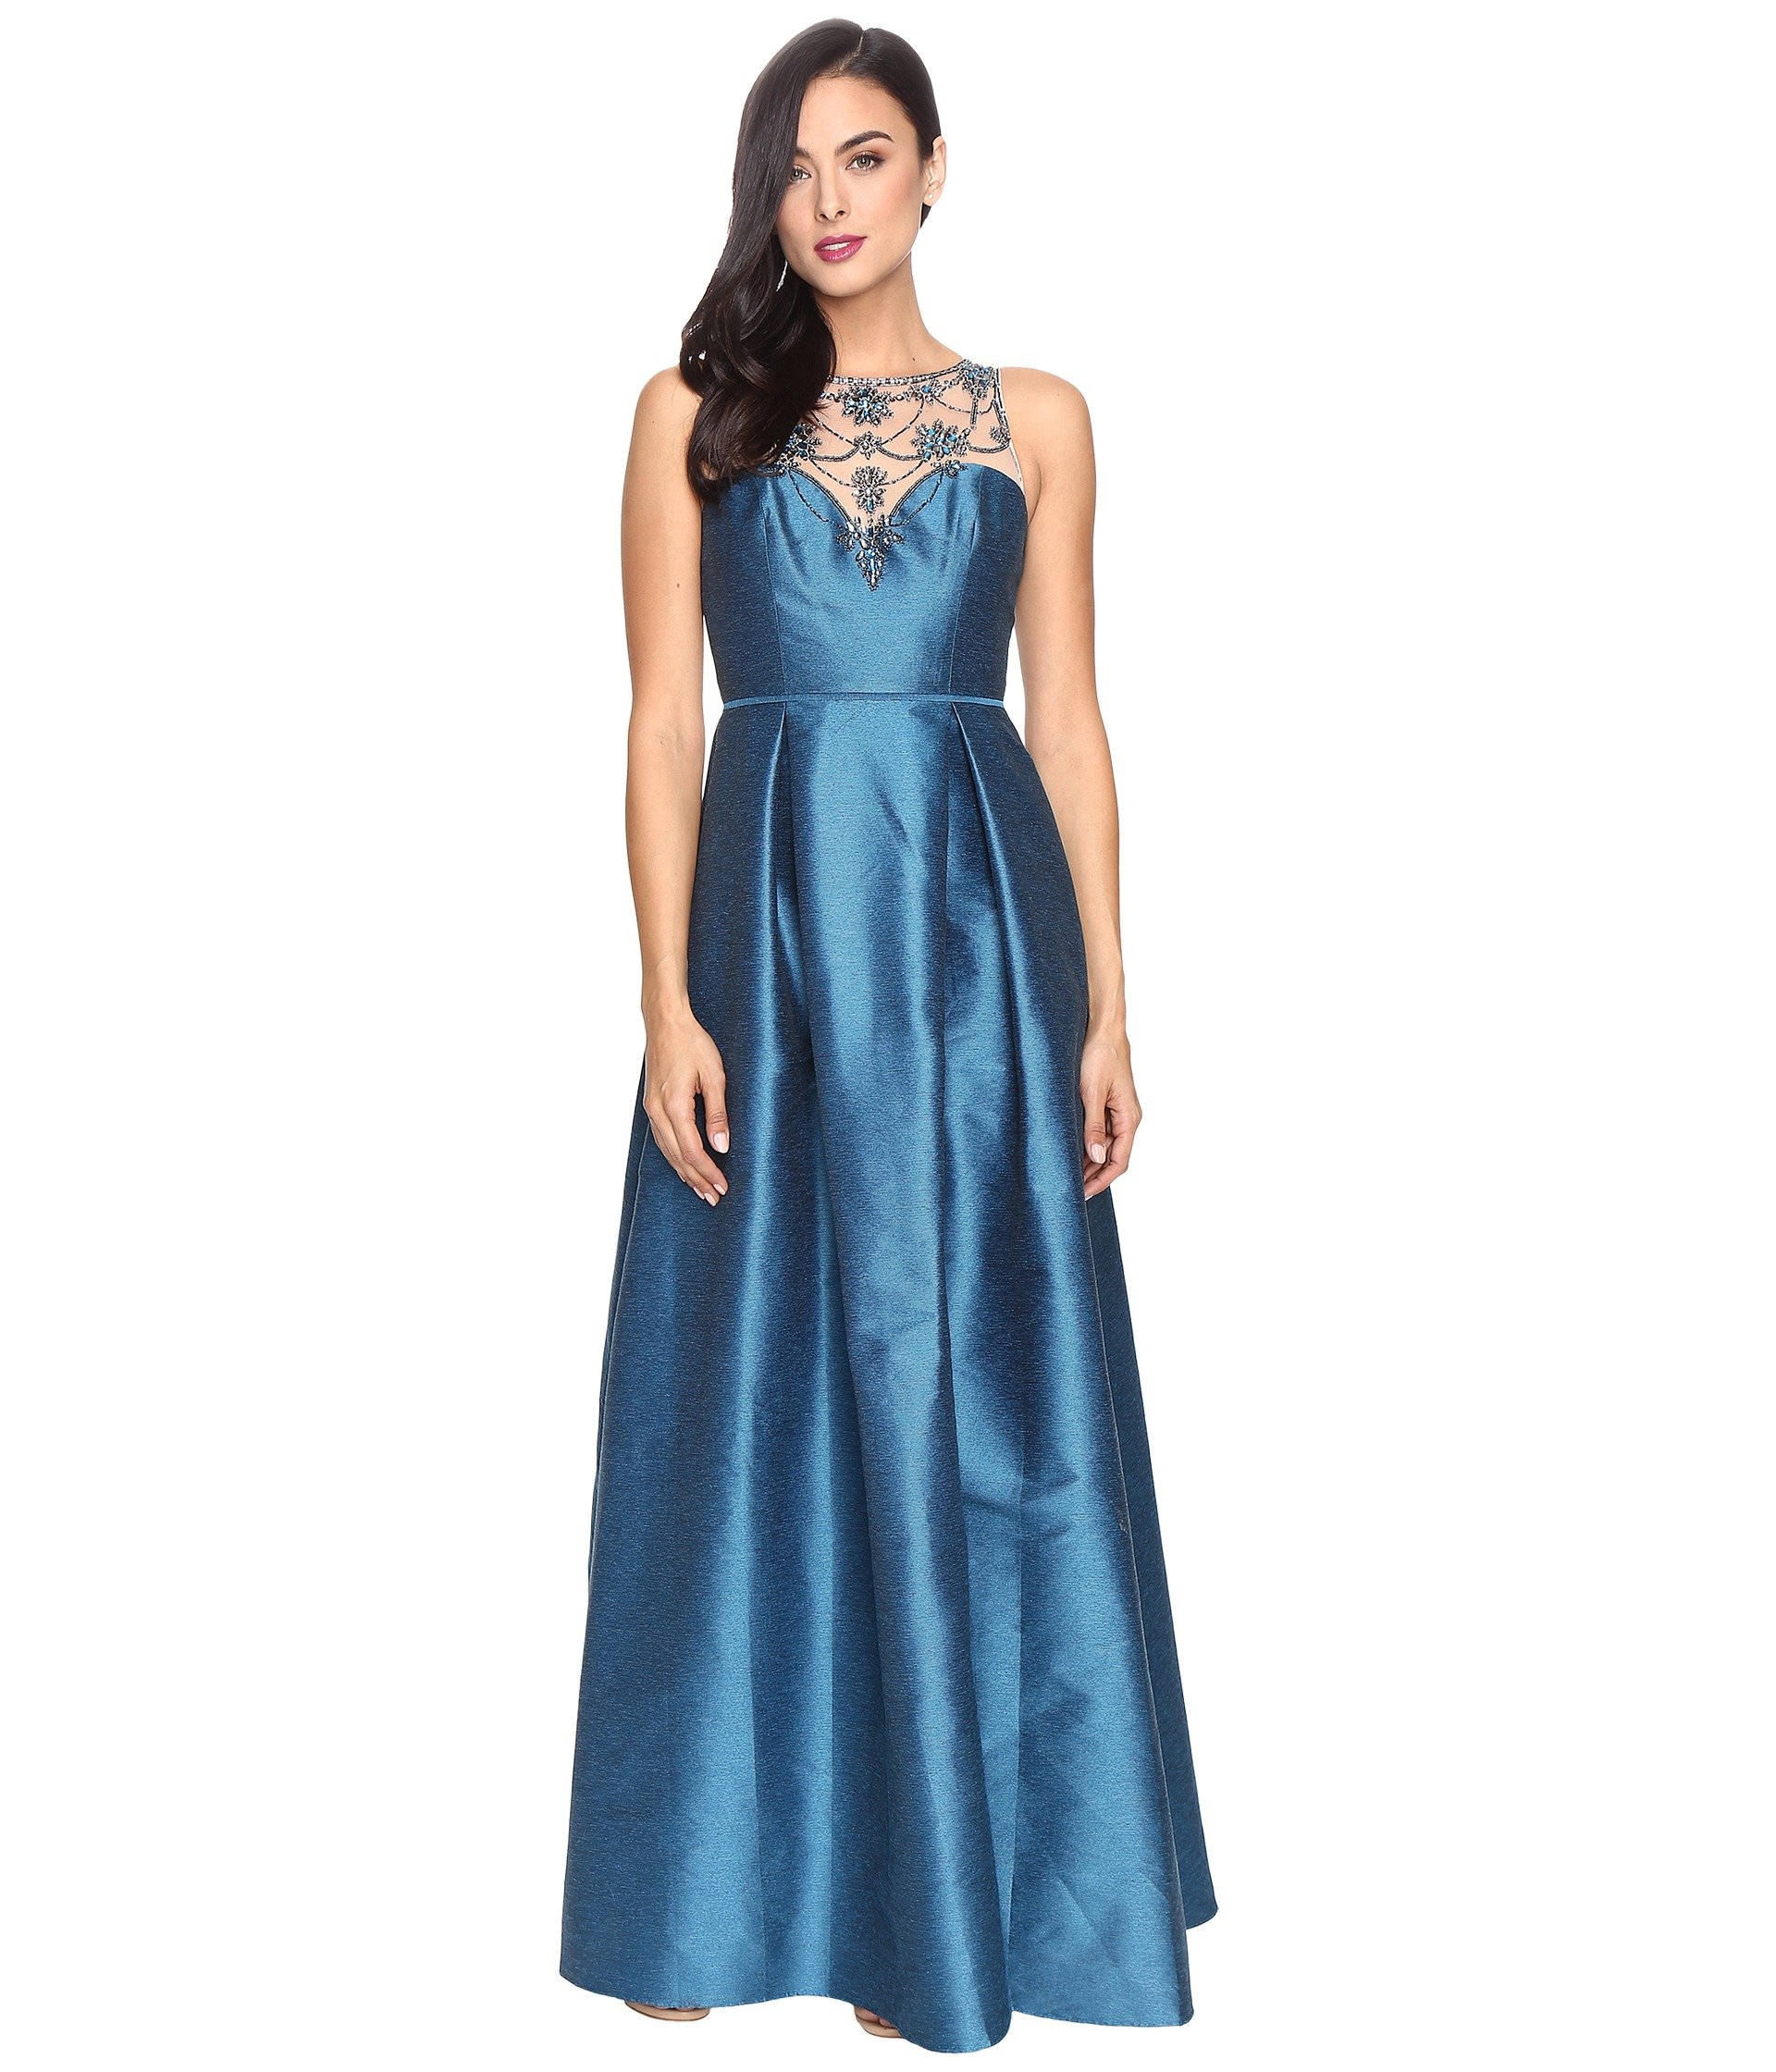 ADRIANNA PAPELL CASABLANCA HALTER BEADED BODICE BALL GOWN WITH FRONT ...